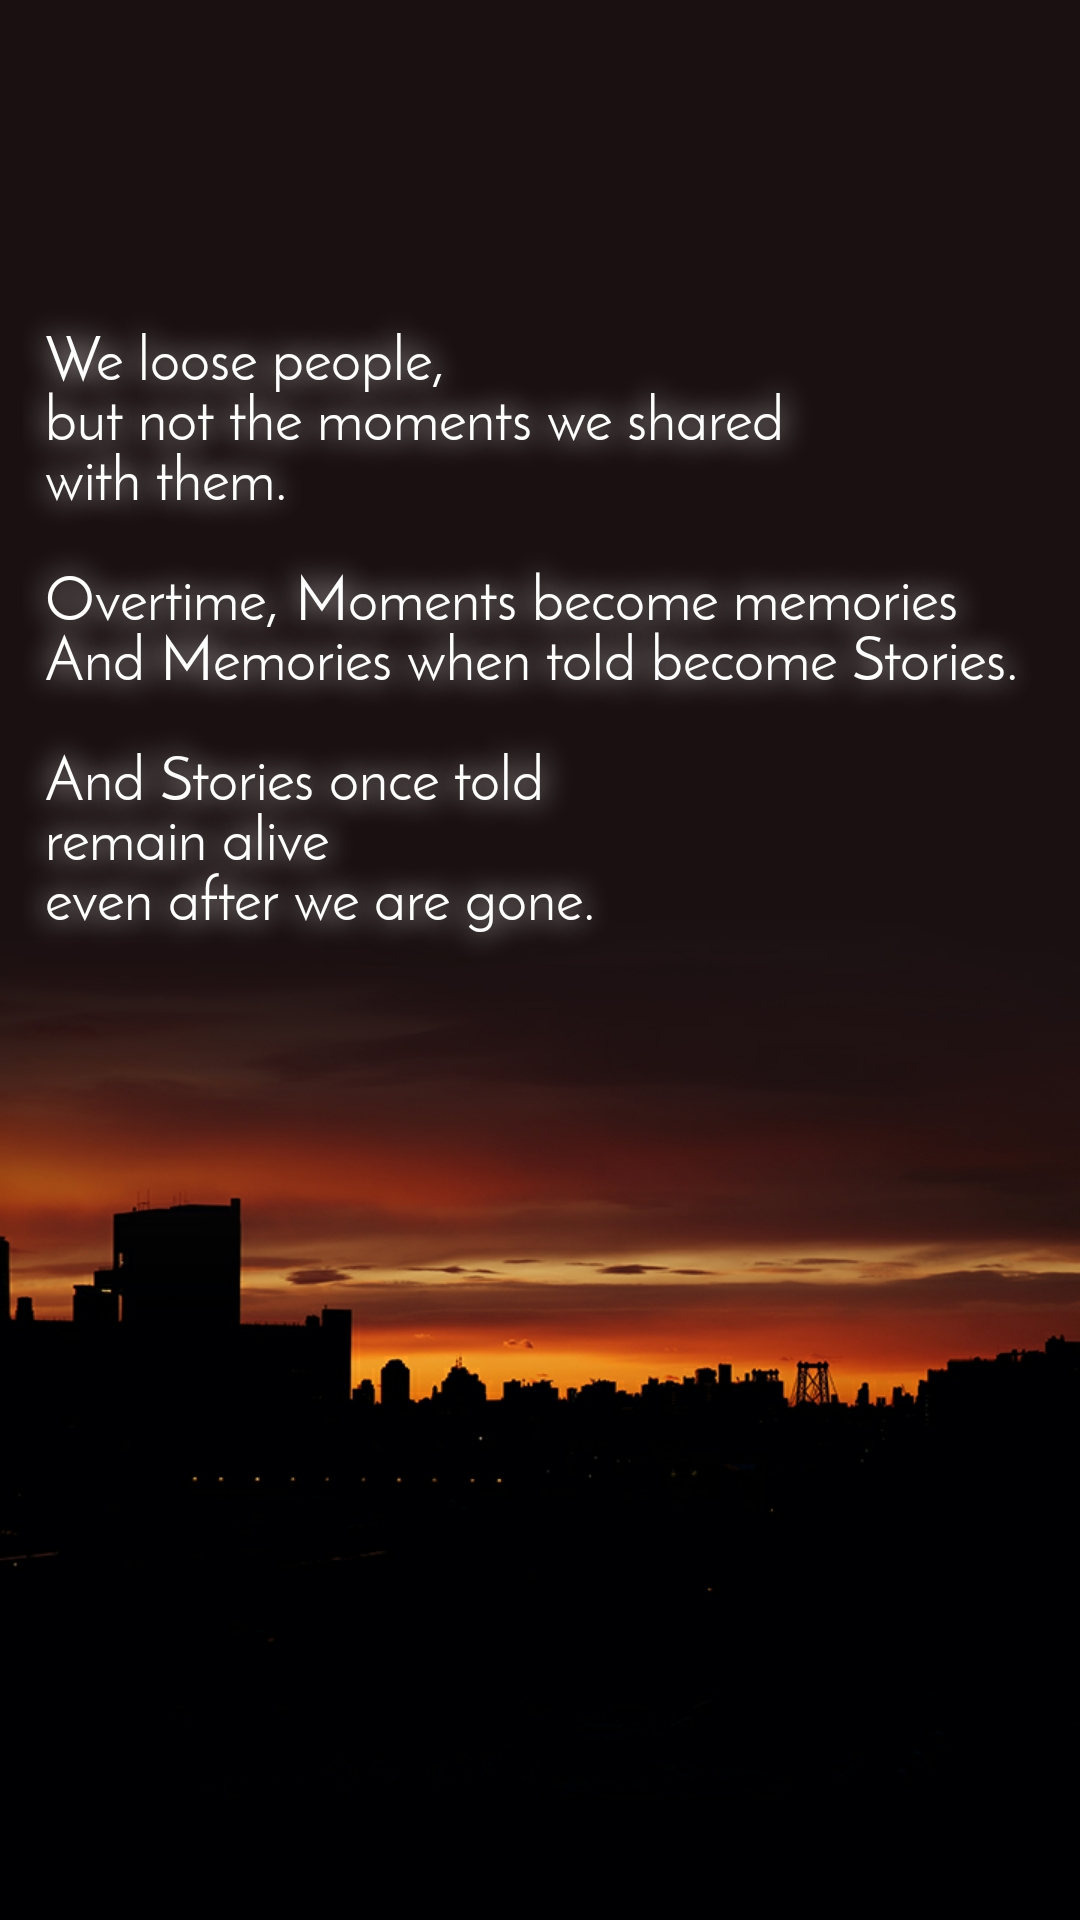 We loose people,  but not the moments we shared with them.   Overtime, Moments become memories And Memories when told become Stories.   And Stories once told remain alive even after we are gone.